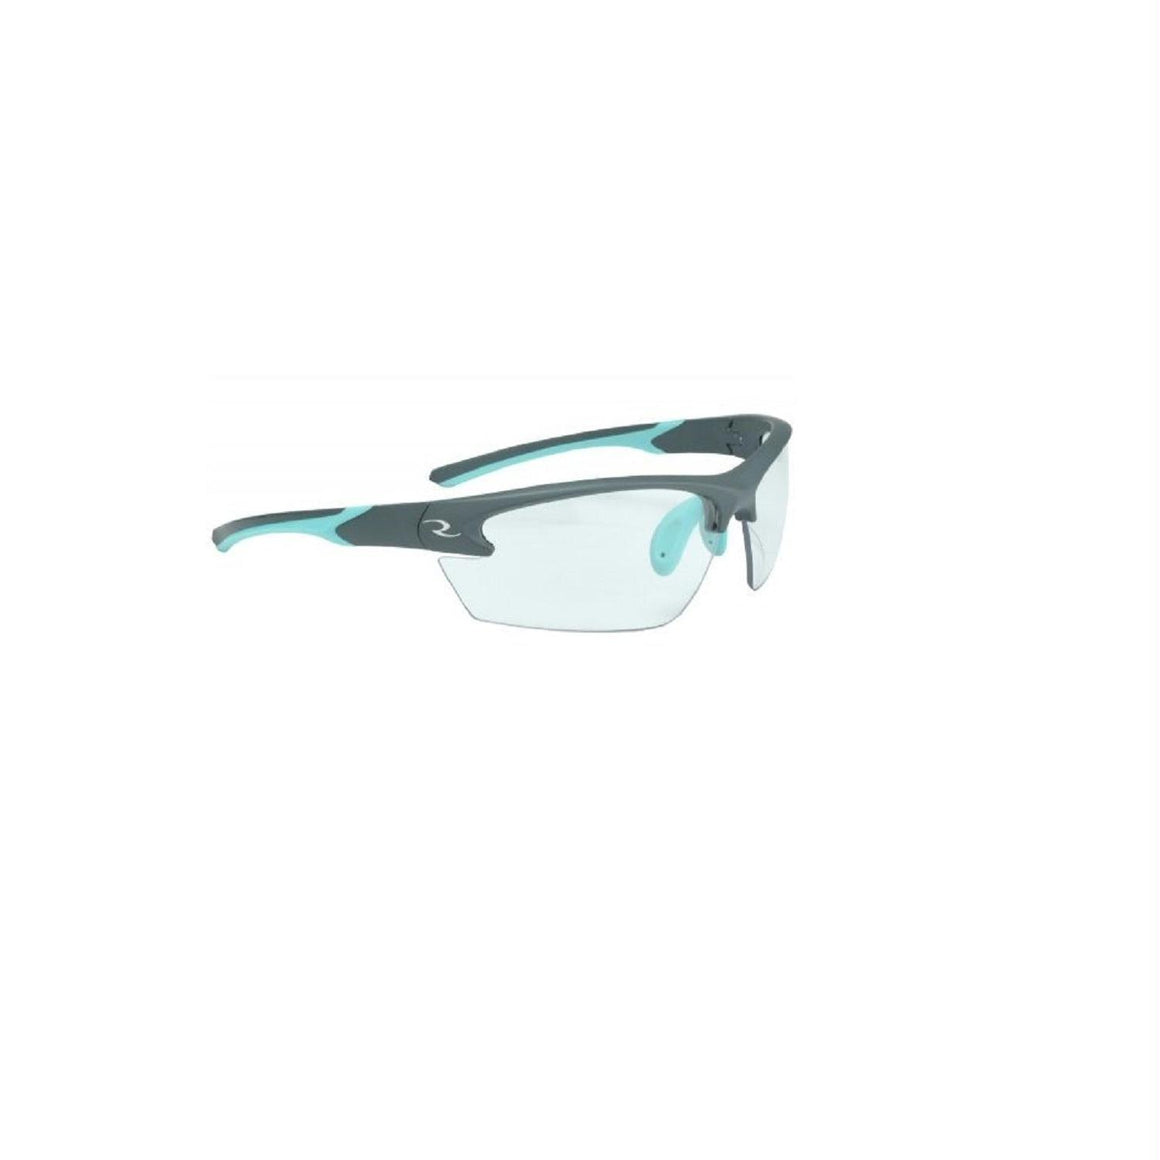 Radians Ladies Range Eyewear - Aqua - Clear